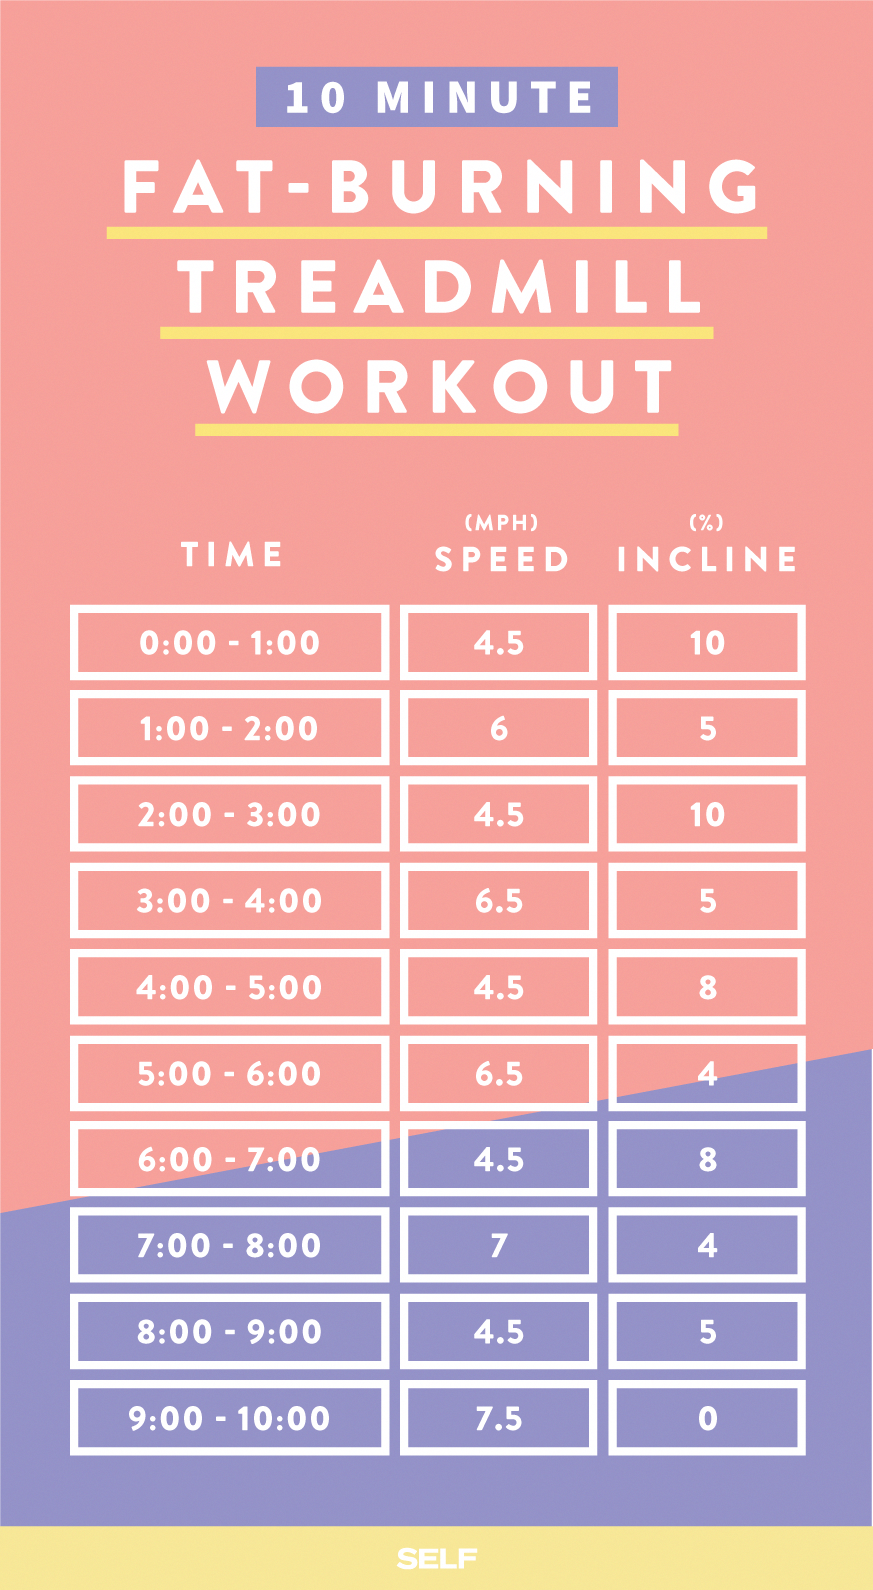 treadmillworkout_fat-burning_pinnable #Fitness